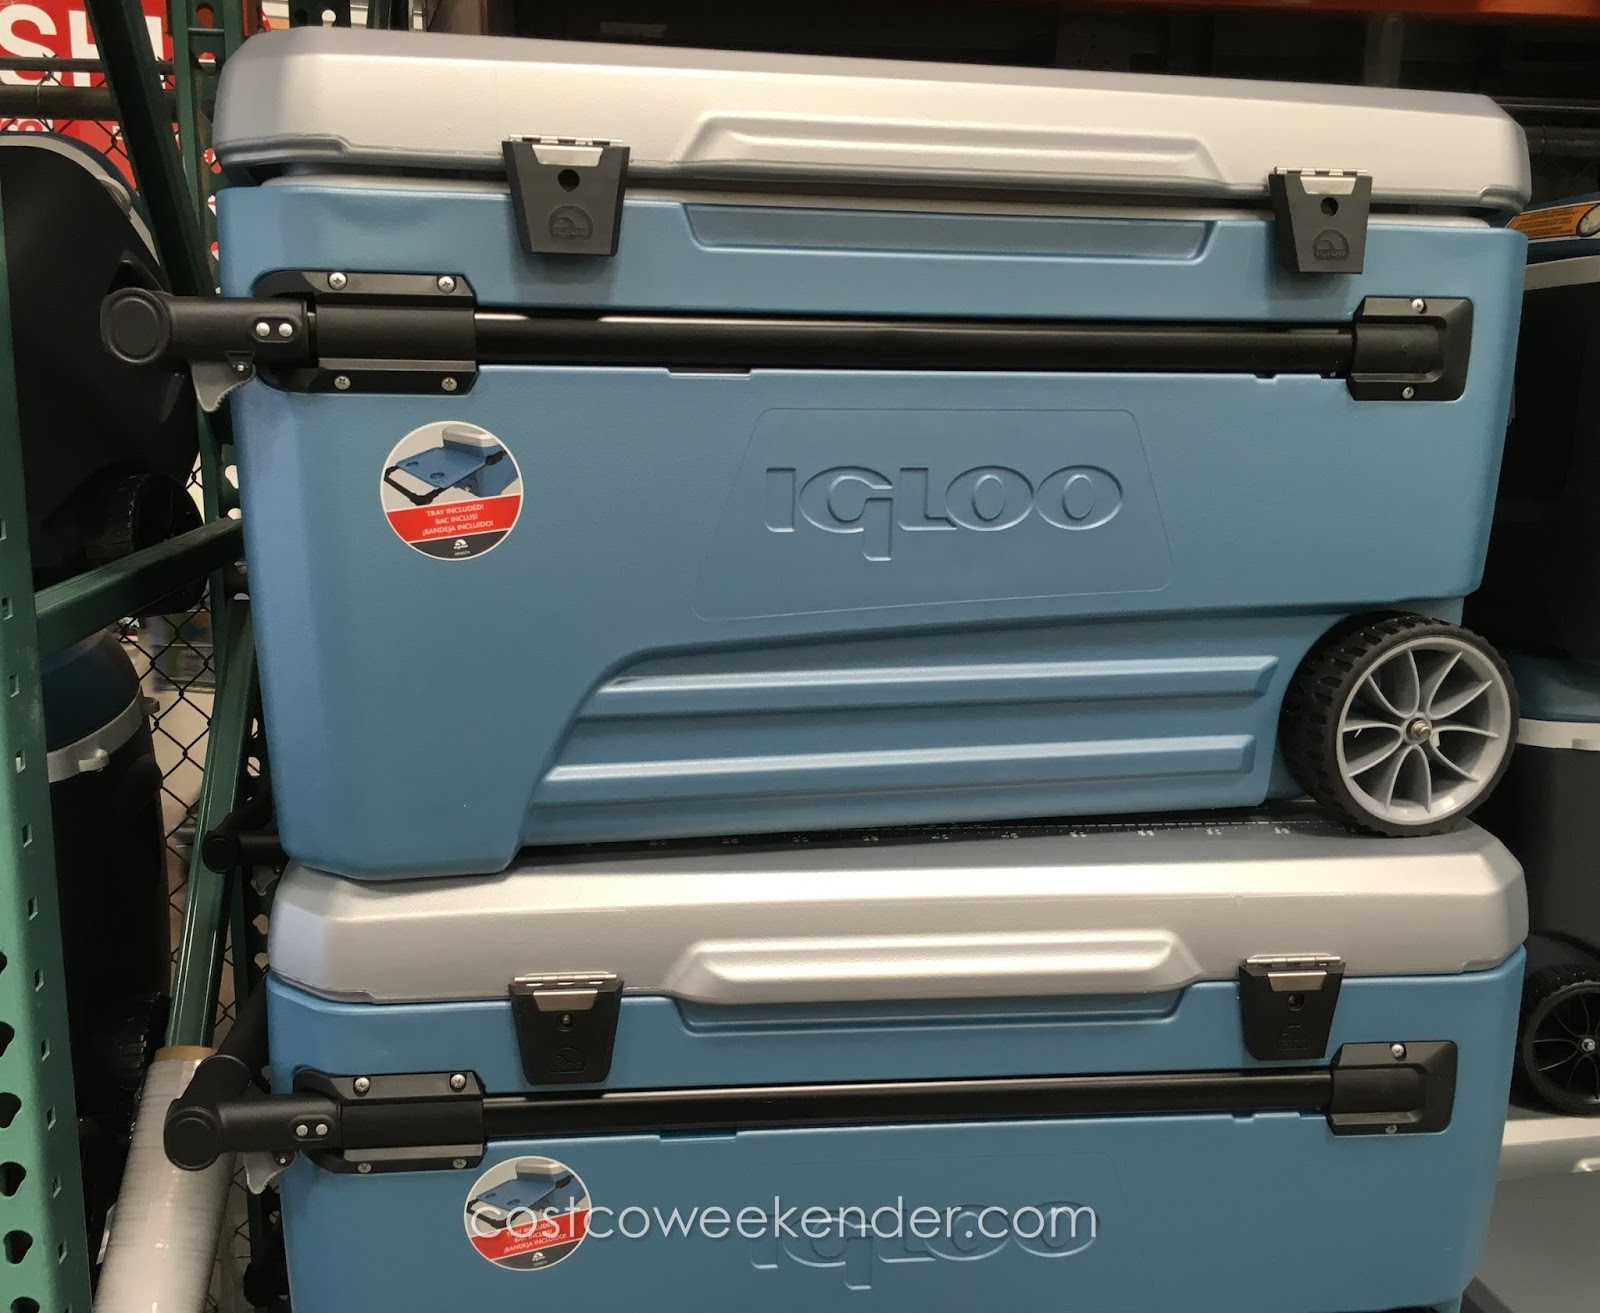 Camping Coolers At Costco Sante Blog